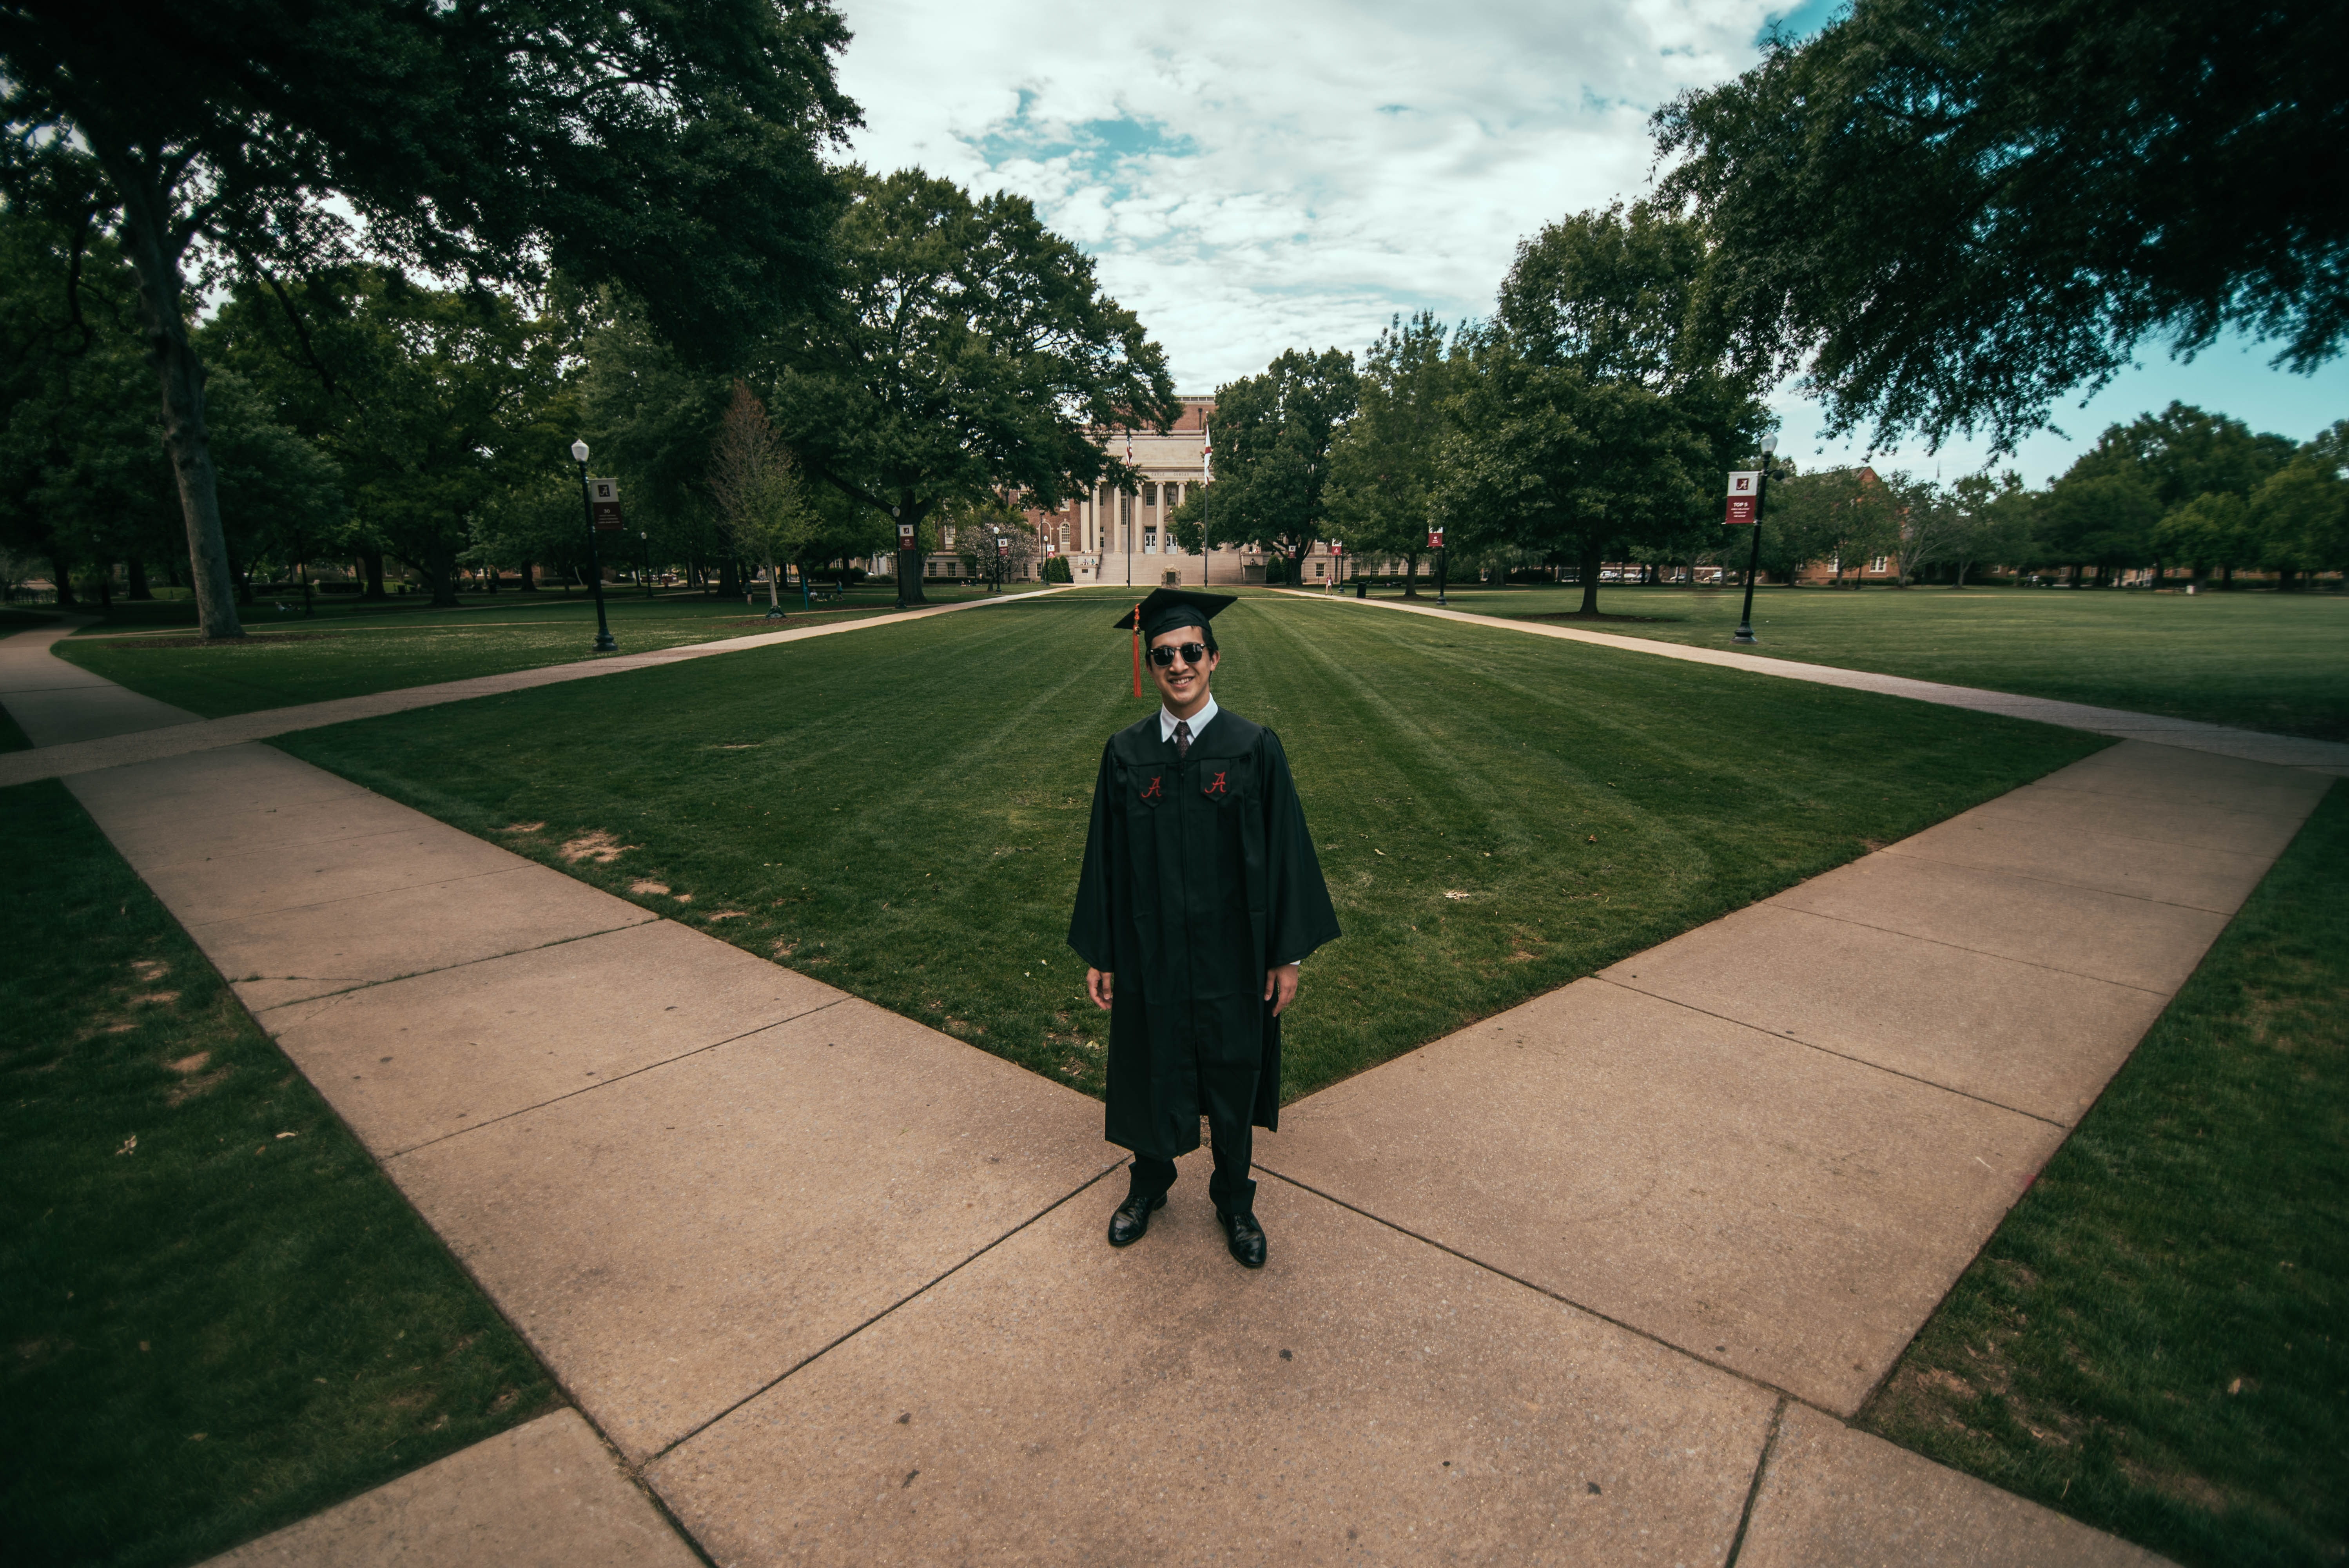 man wearing academic gown standing on green field